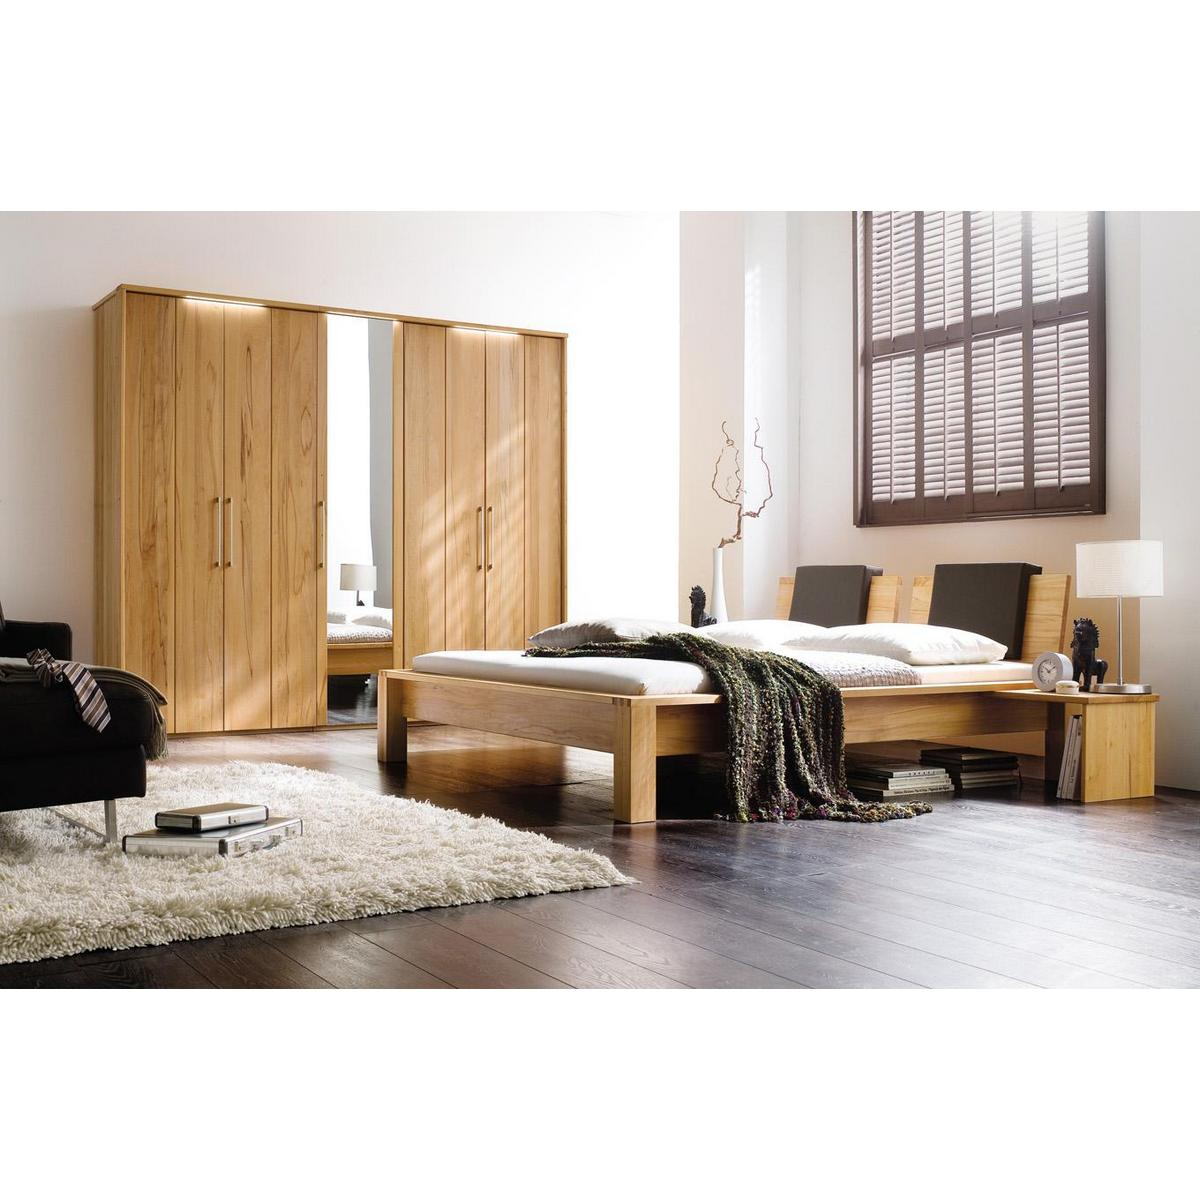 vollholz bett 200x200 palermo kernbuche massiv. Black Bedroom Furniture Sets. Home Design Ideas